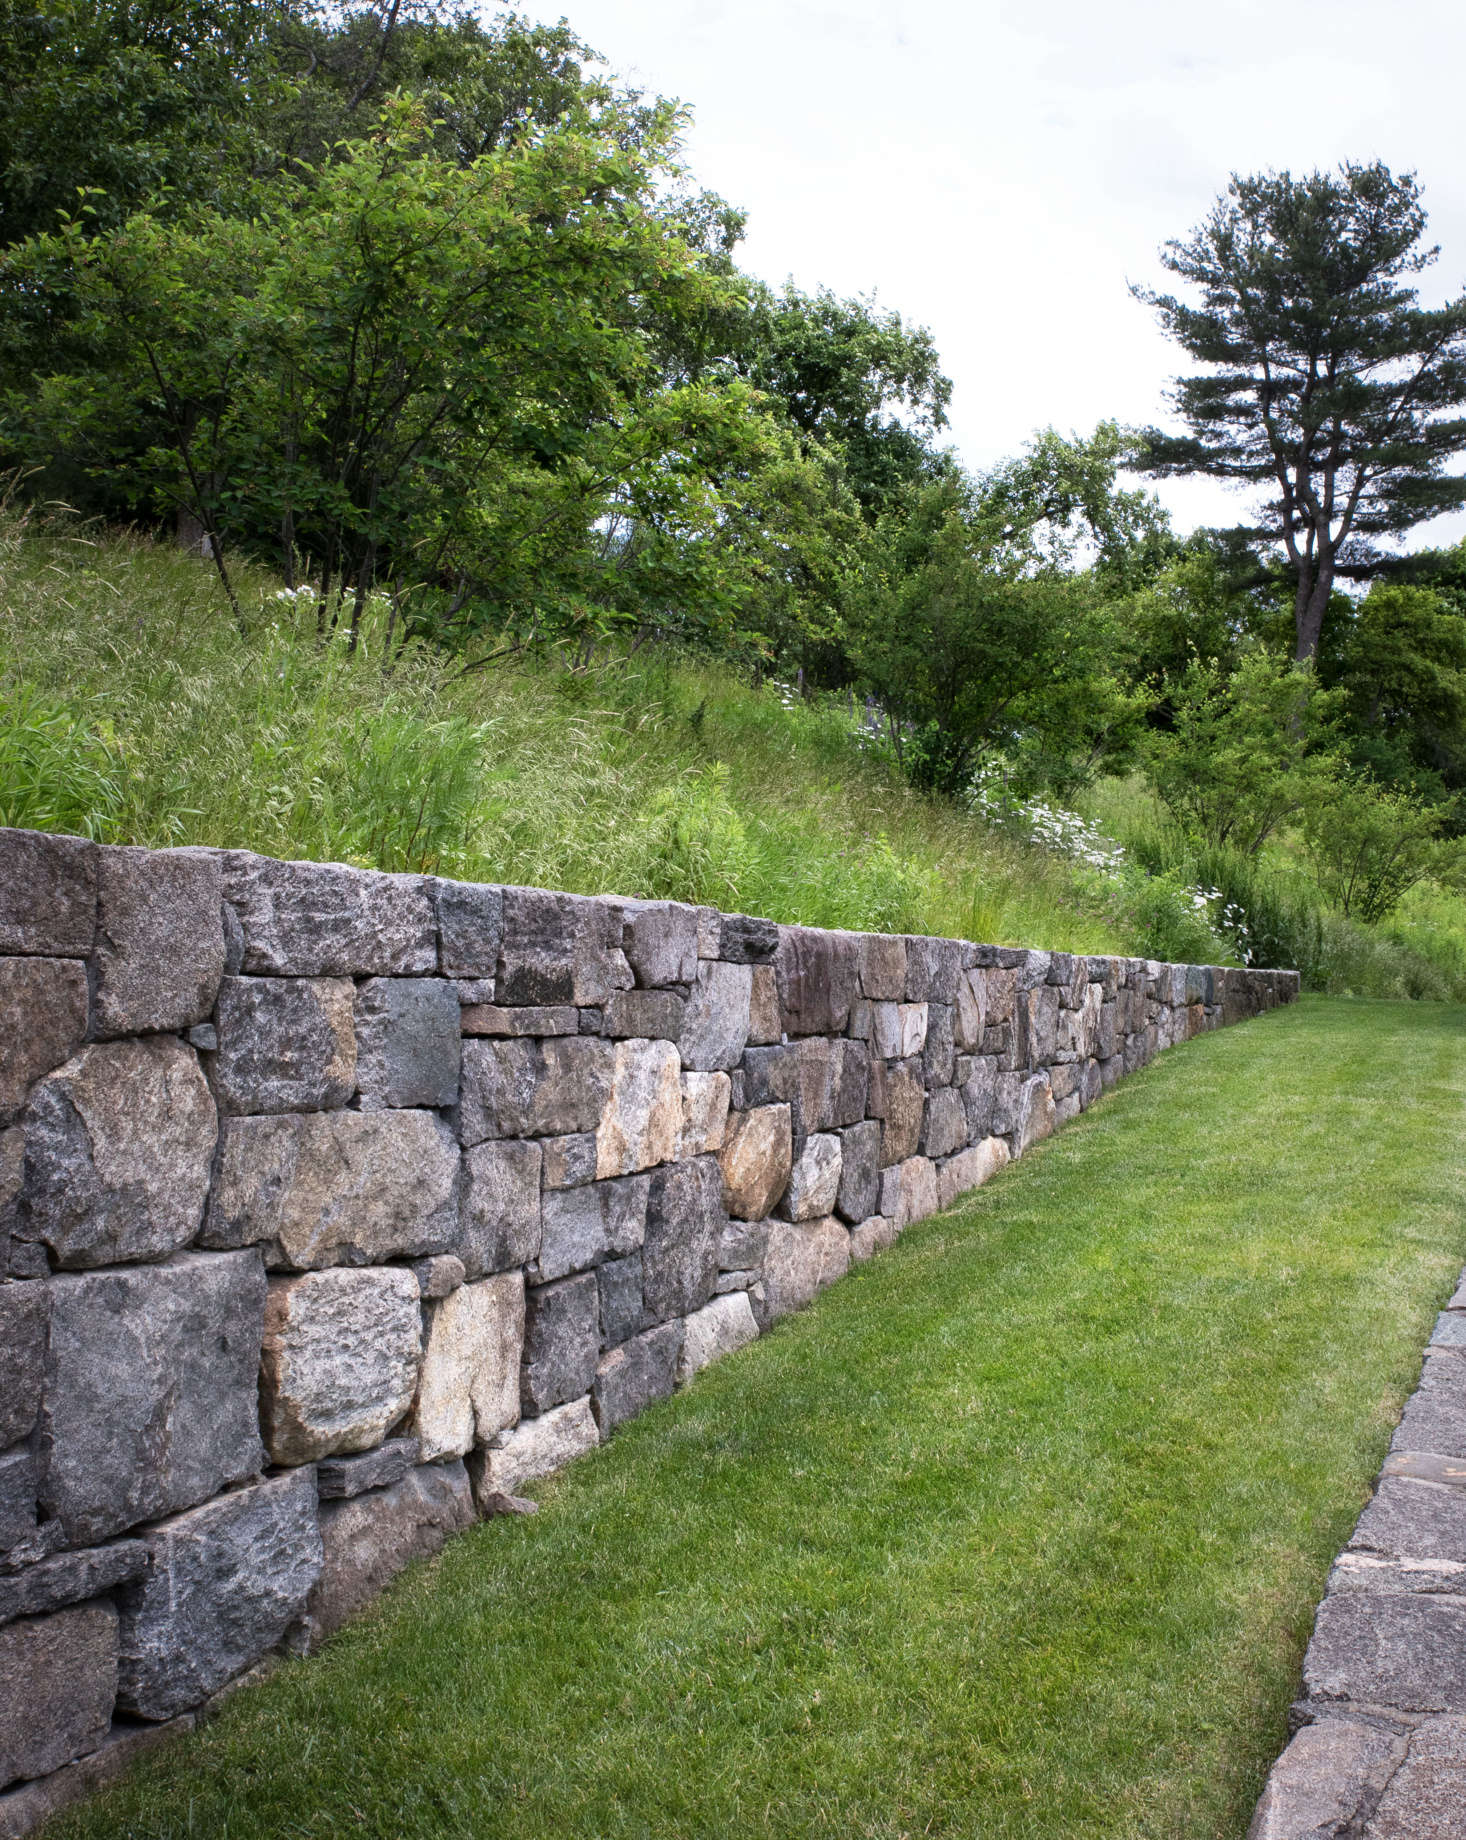 """The four, new, fieldstone walls on the property were constructed using locally sourced stones carefully chosen for its character and appearance. All new walls utilized stones that were intentionally larger and rough-hewn to blend with the rustic surroundings. Some show a combination of """"faces,"""" some are naturally weathered, while others show a tooled edge; all so that the newly built wall feels older."""